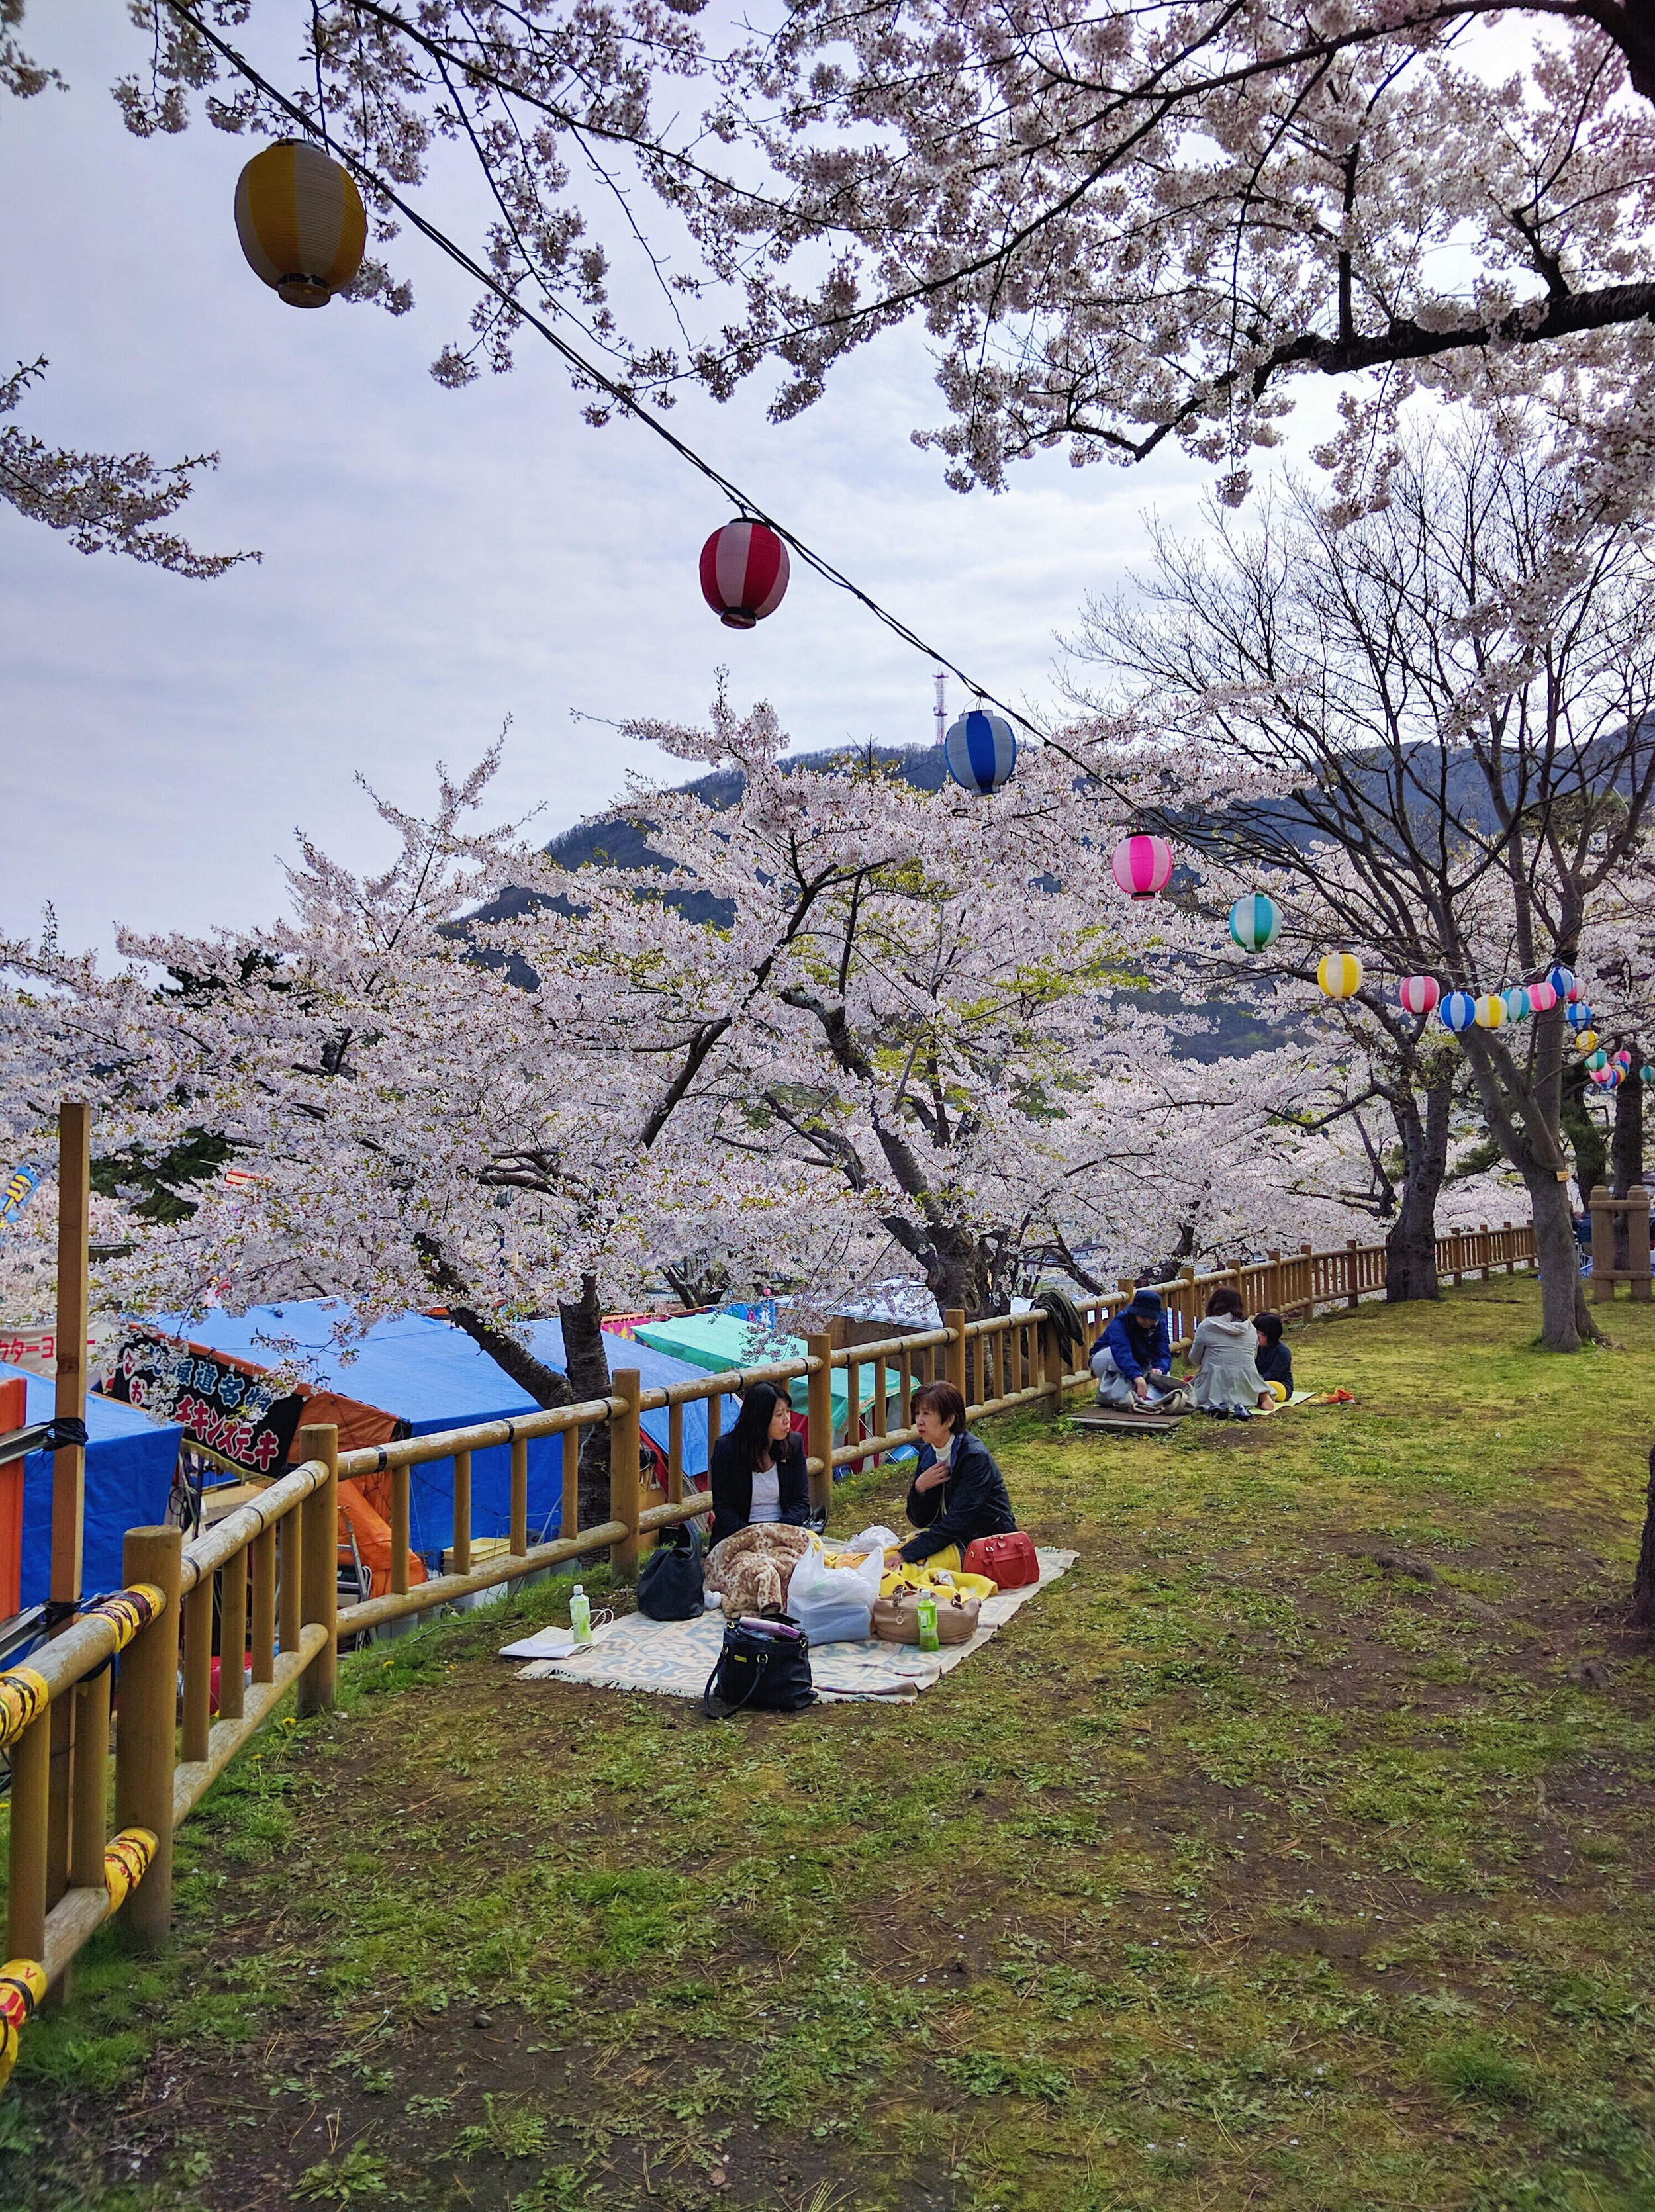 Common Japanese past-time during cherry blossom season is picnicking under the blooming trees and enjoying the scenery, an activitiy called  hanami  in Japanese.